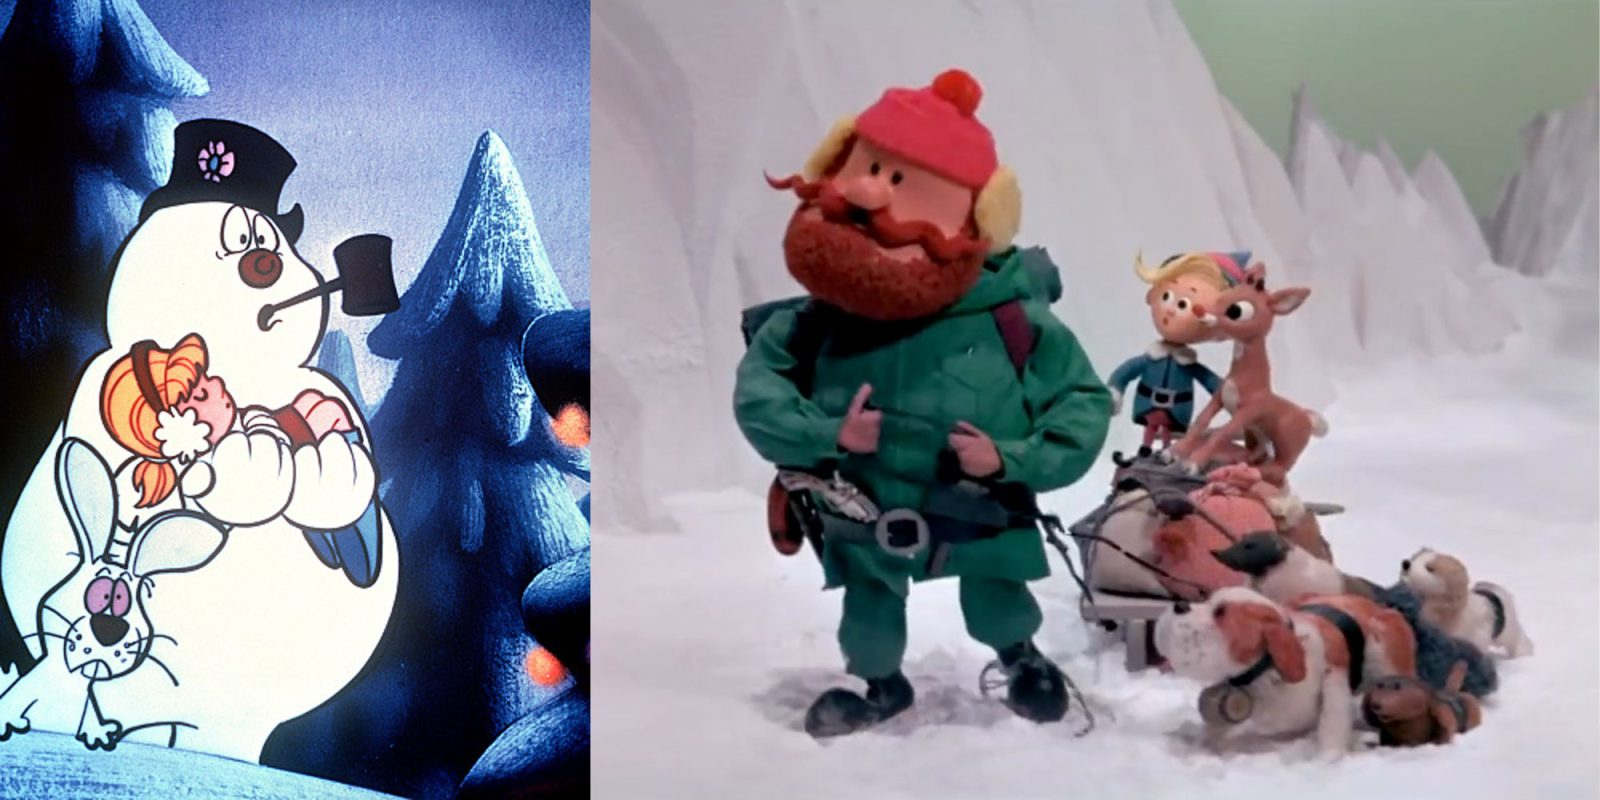 Score holiday classics like Rudolph or Frosty in VUDU's 2-for-$10 sale